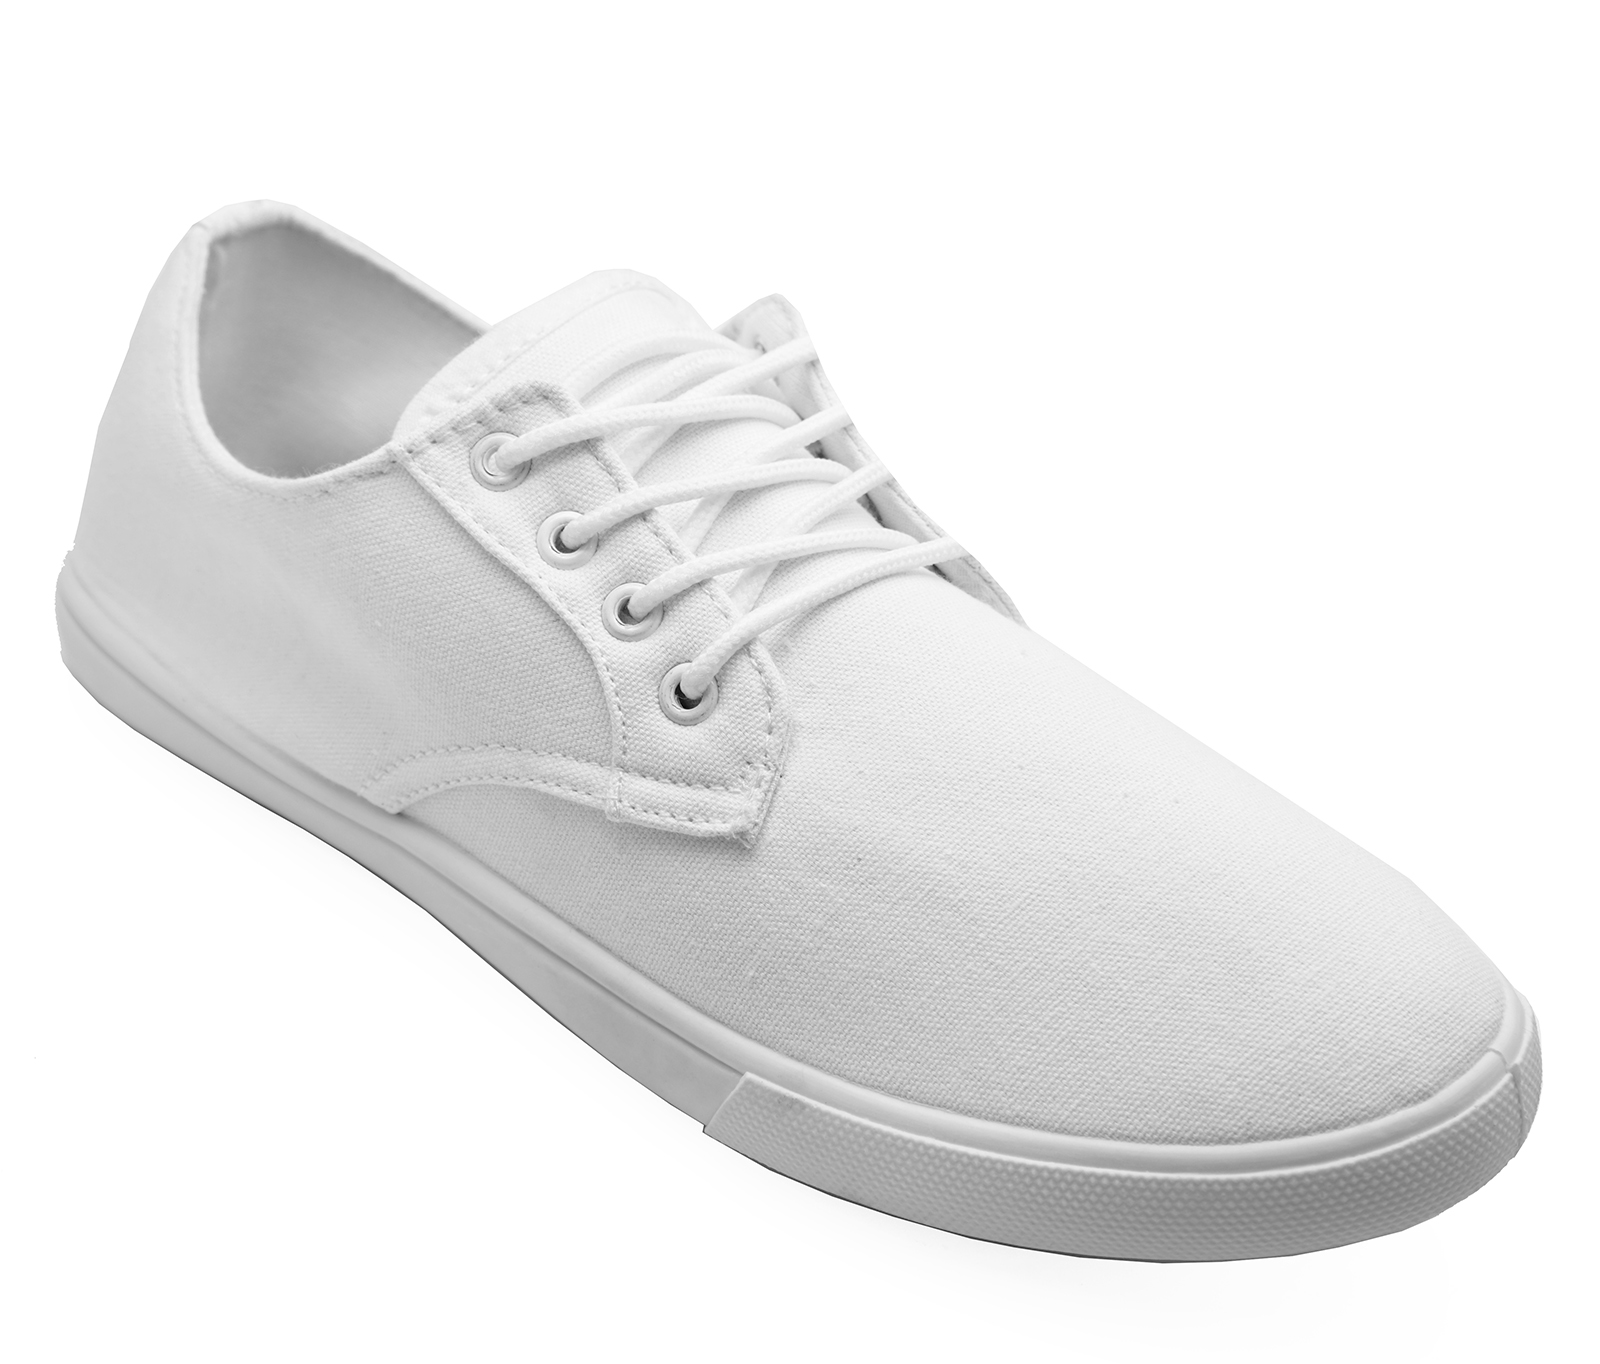 MENS-LACE-UP-WHITE-CANVAS-FLAT-TRAINER-PLIMSOLL-PUMPS-CASUAL-SHOES-SIZES-6-12 thumbnail 23